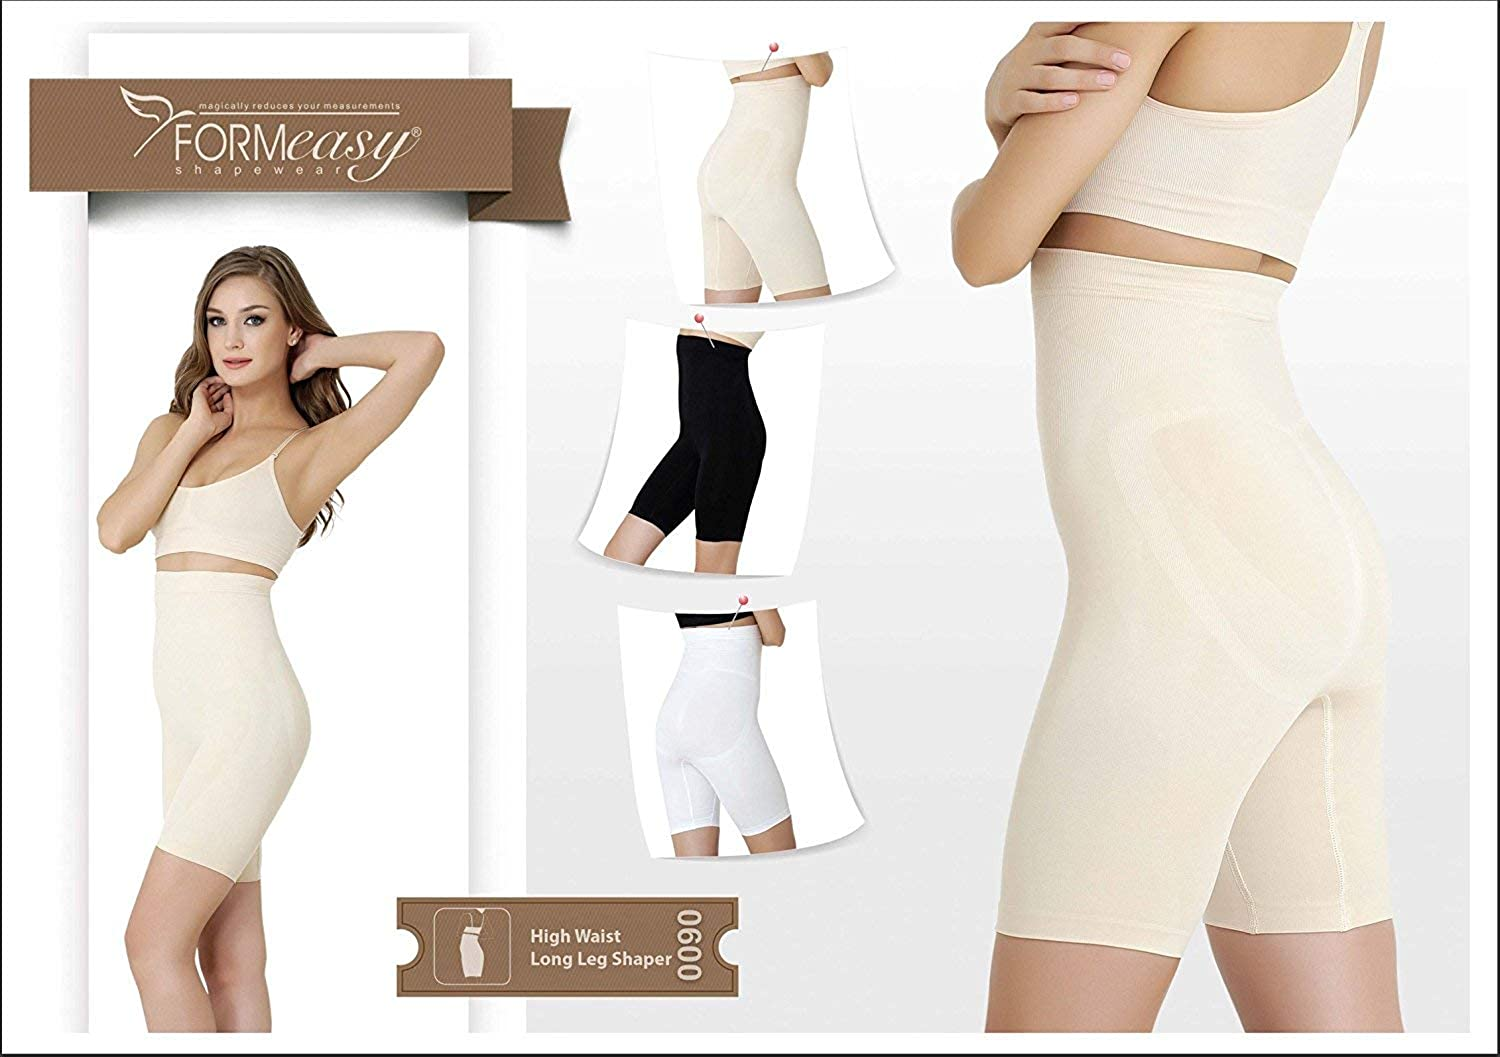 1c811c75d2 FORMeasy Women`s Seamless Shapewear Hi-Waist Long Leg Slimmer Tummy Control  at Amazon Women s Clothing store